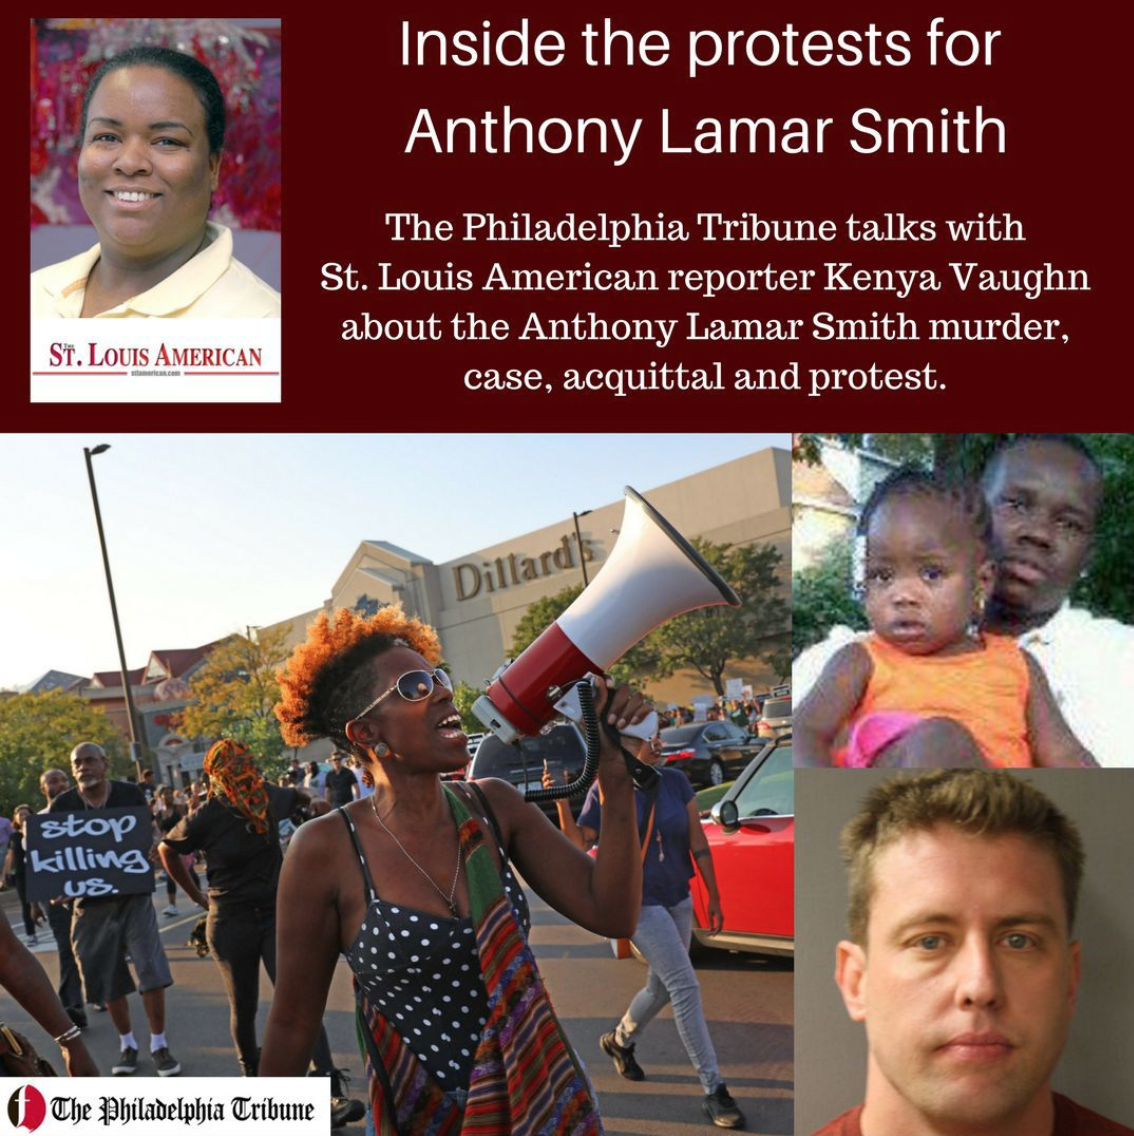 09/21/17: PODCAST: Inside the St. Louis protests following the acquittal in the Anthony Lamar Smith murder